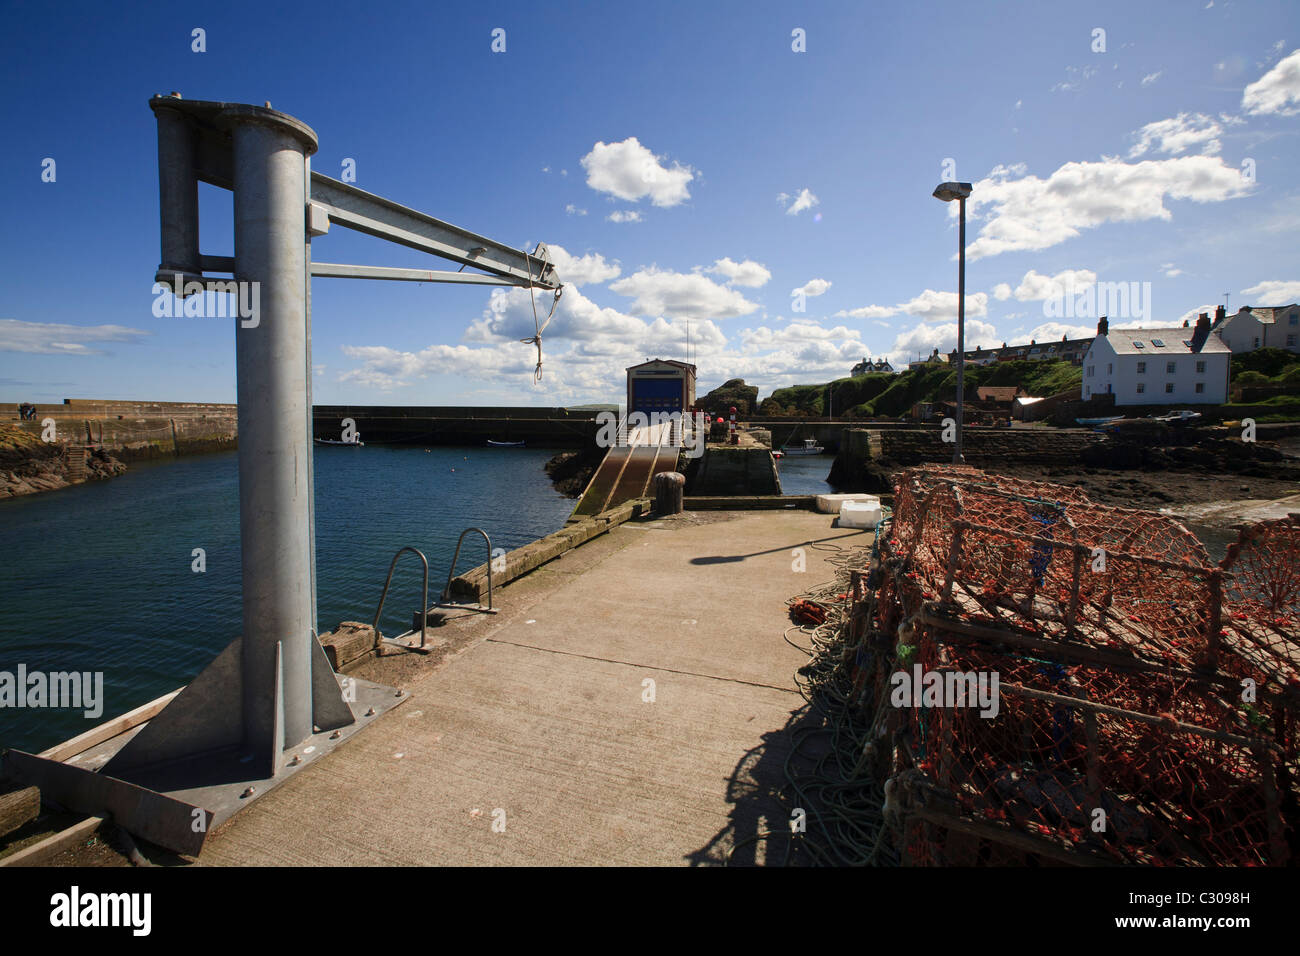 Creel pots and crane on the harbour wall at St. Abbs, Berwickshire - Stock Image